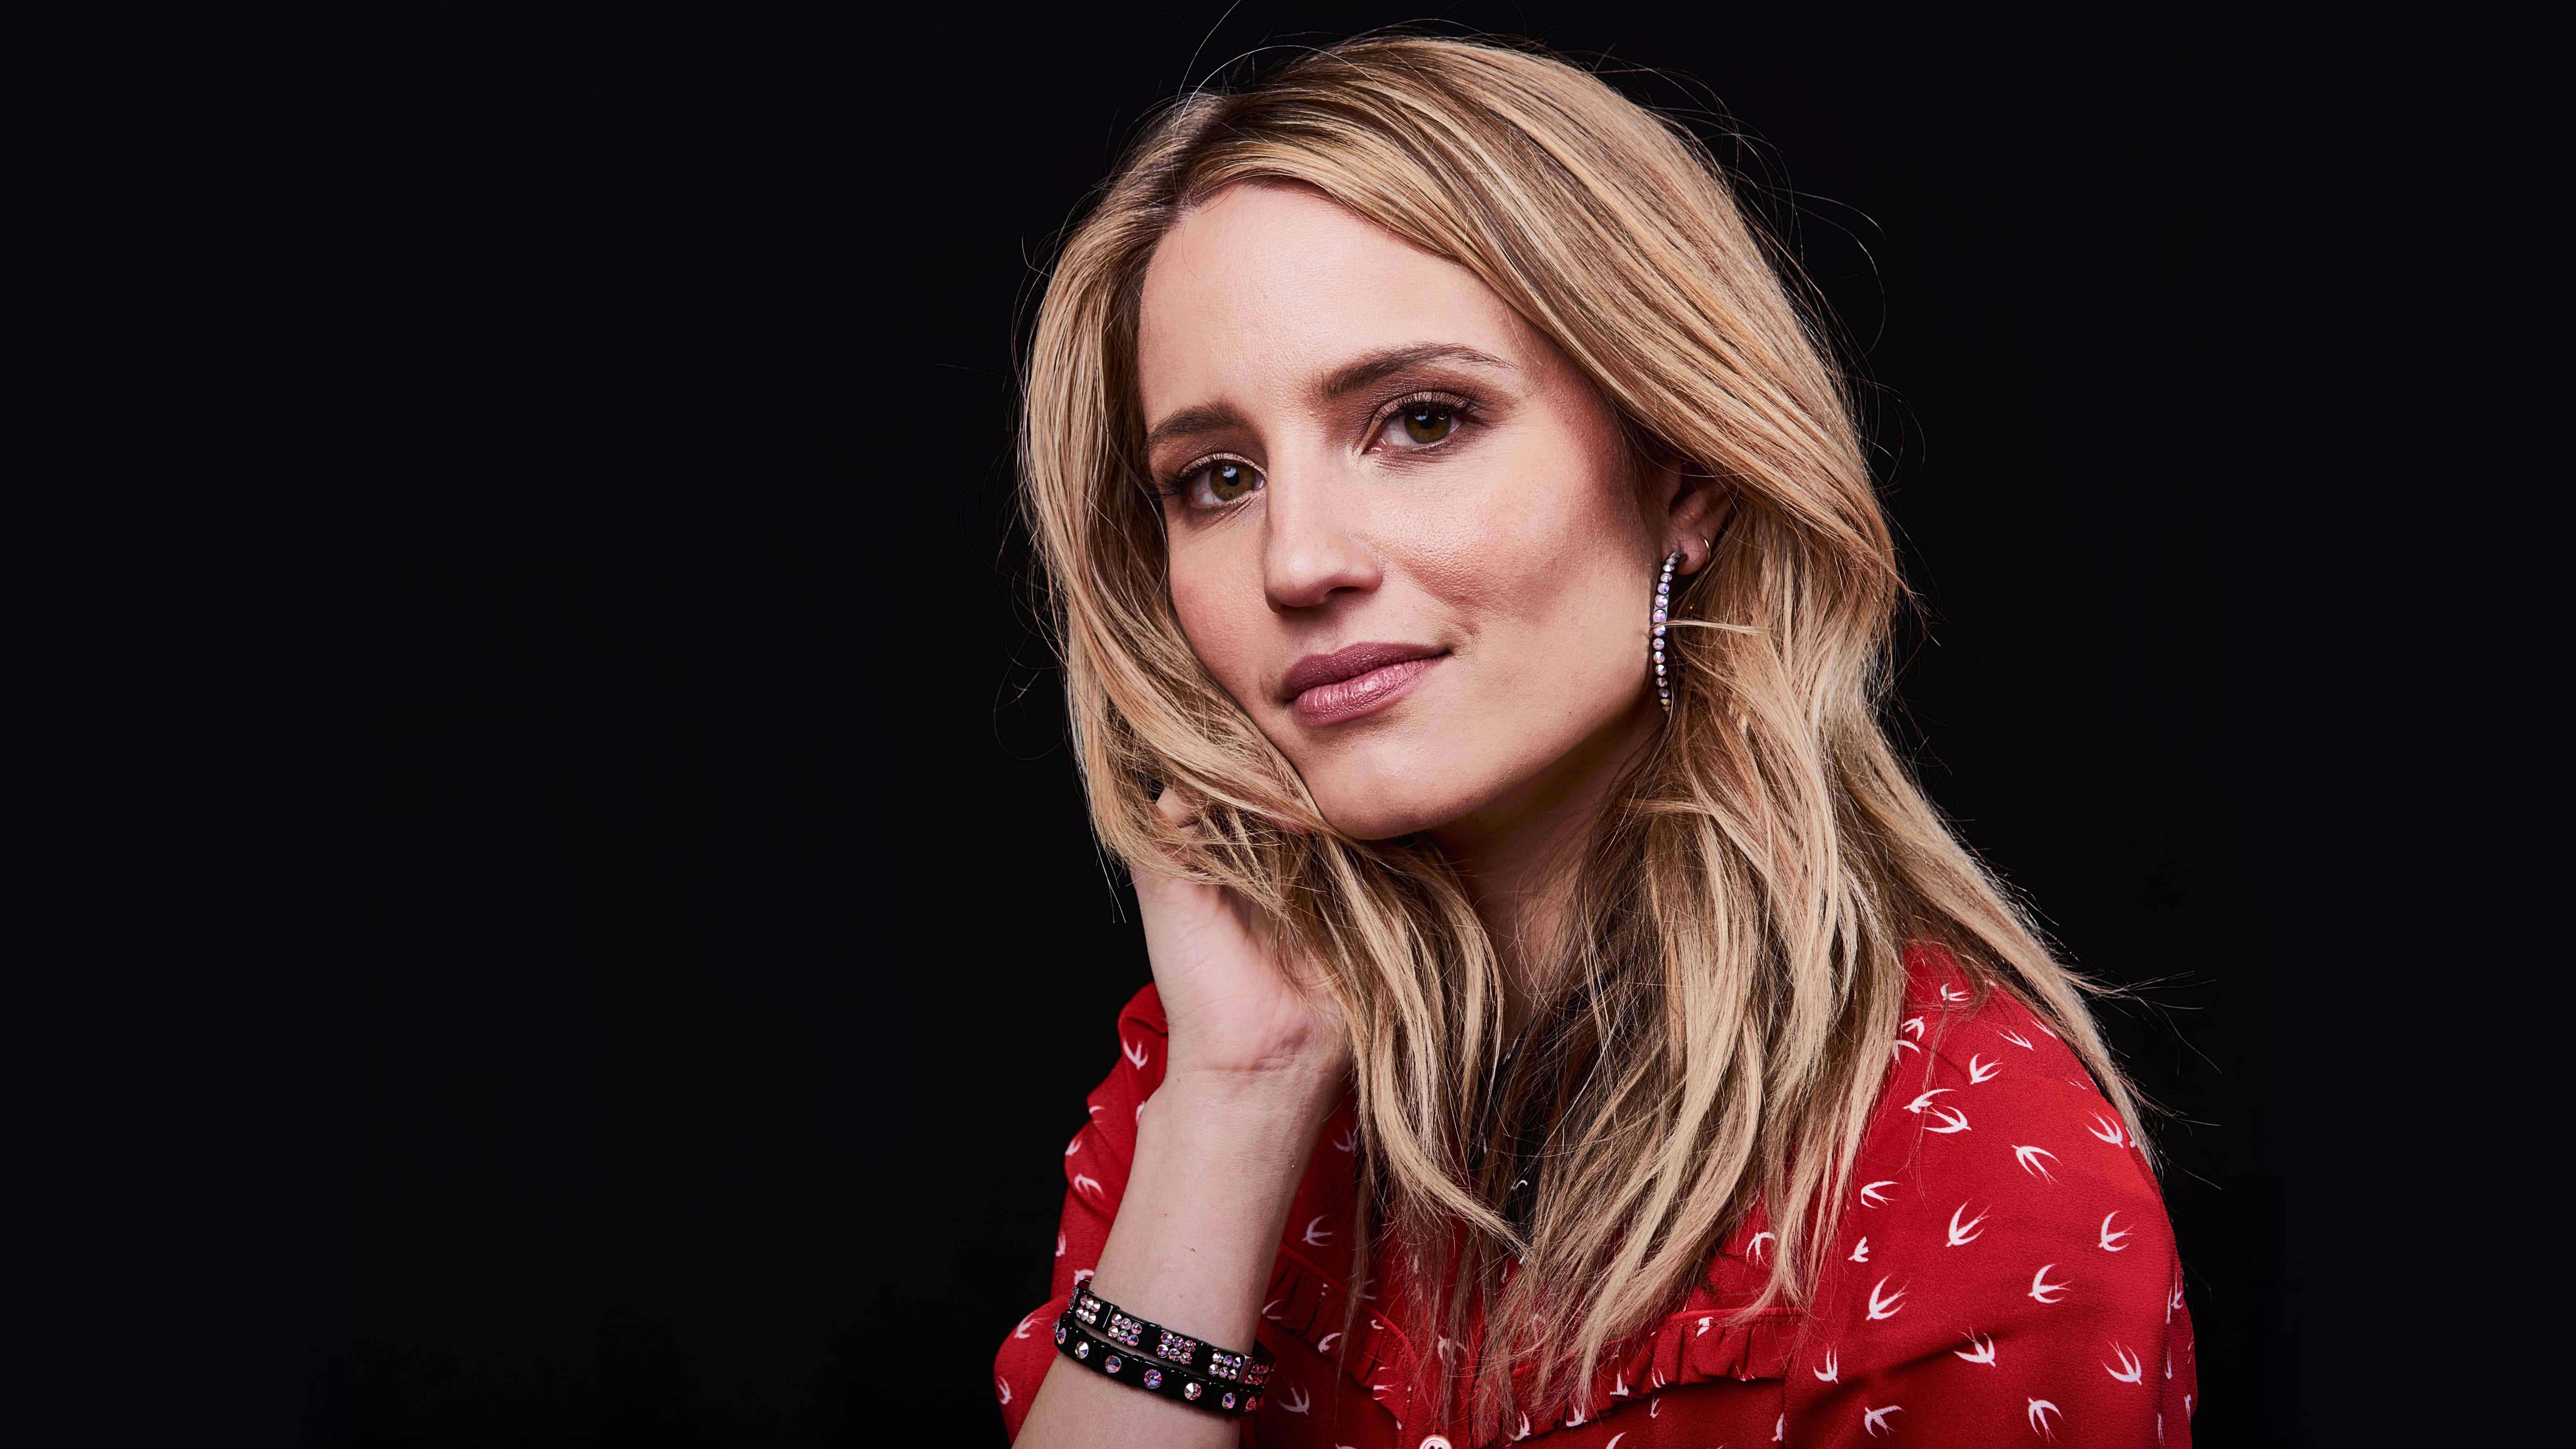 7680x4320 - Dianna Agron Wallpapers 26